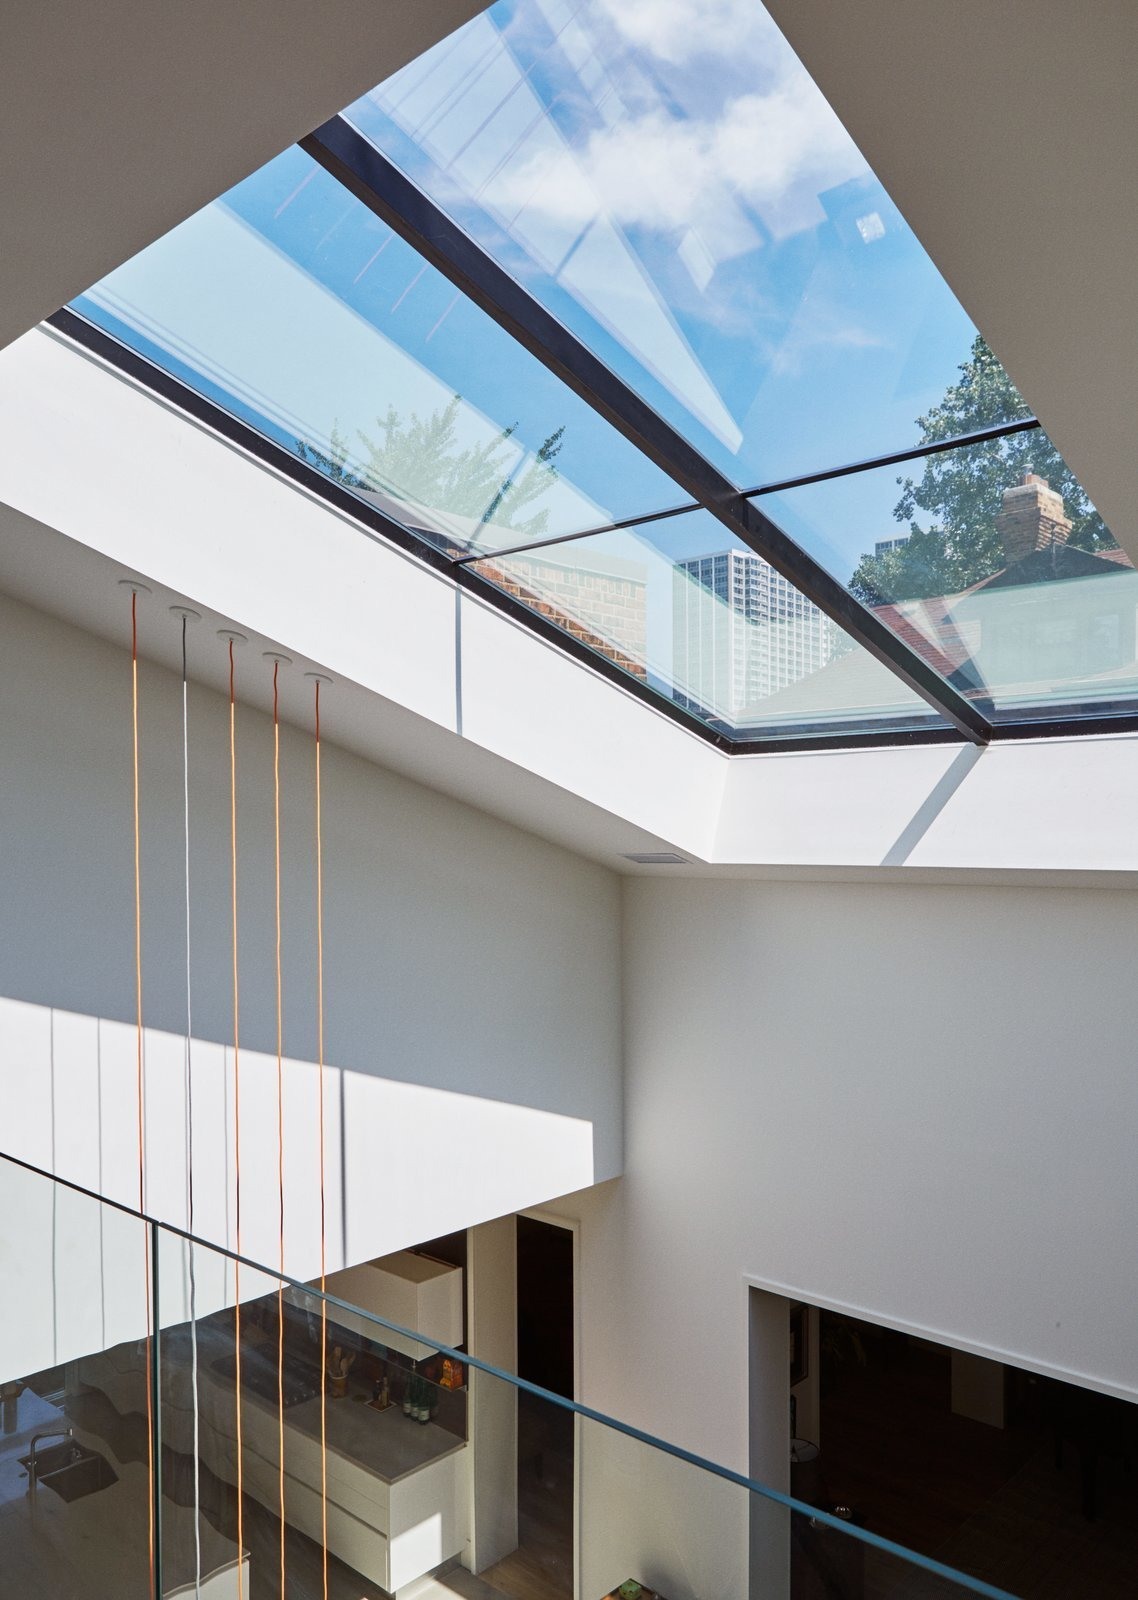 dSPACE Studio transformed a 1970s style Chicago residence into a bright, open and stylish home with an expansive 20-foot skylight that presents views of the surrounding neighborhood. Tagged: Windows, Skylight Window Type, and Metal.  Photo 5 of 10 in 10 Light-Filled Homes With Interesting Skylights